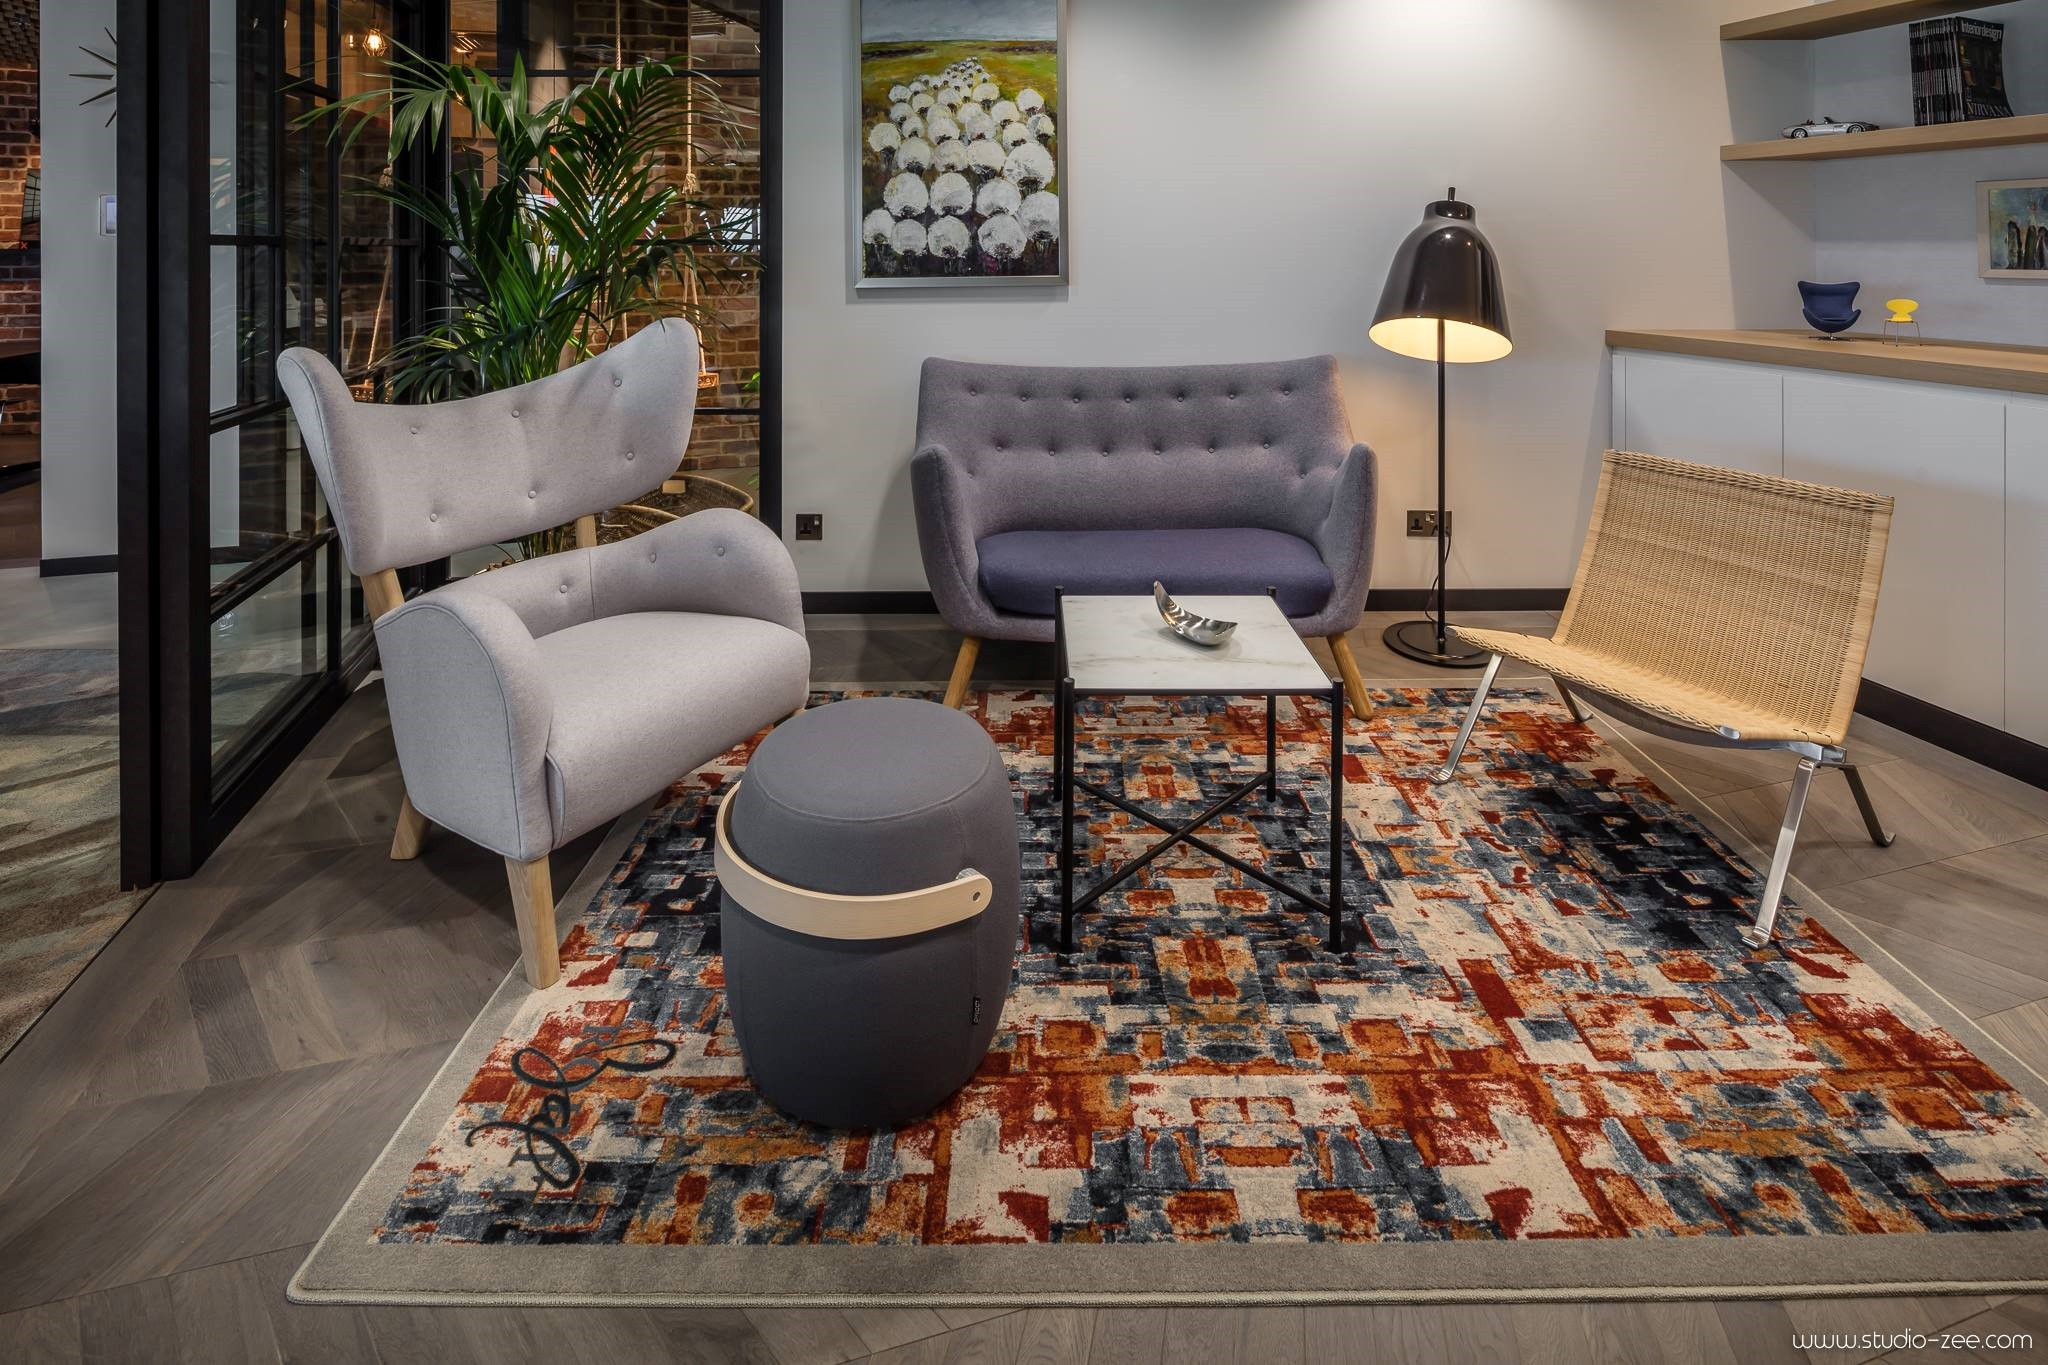 office design companies. Offices Throughout The World Are Changing Way They Approach Every Day Work. Landscape Of Office Design Is Evolving From Cubicles And Conference Companies U